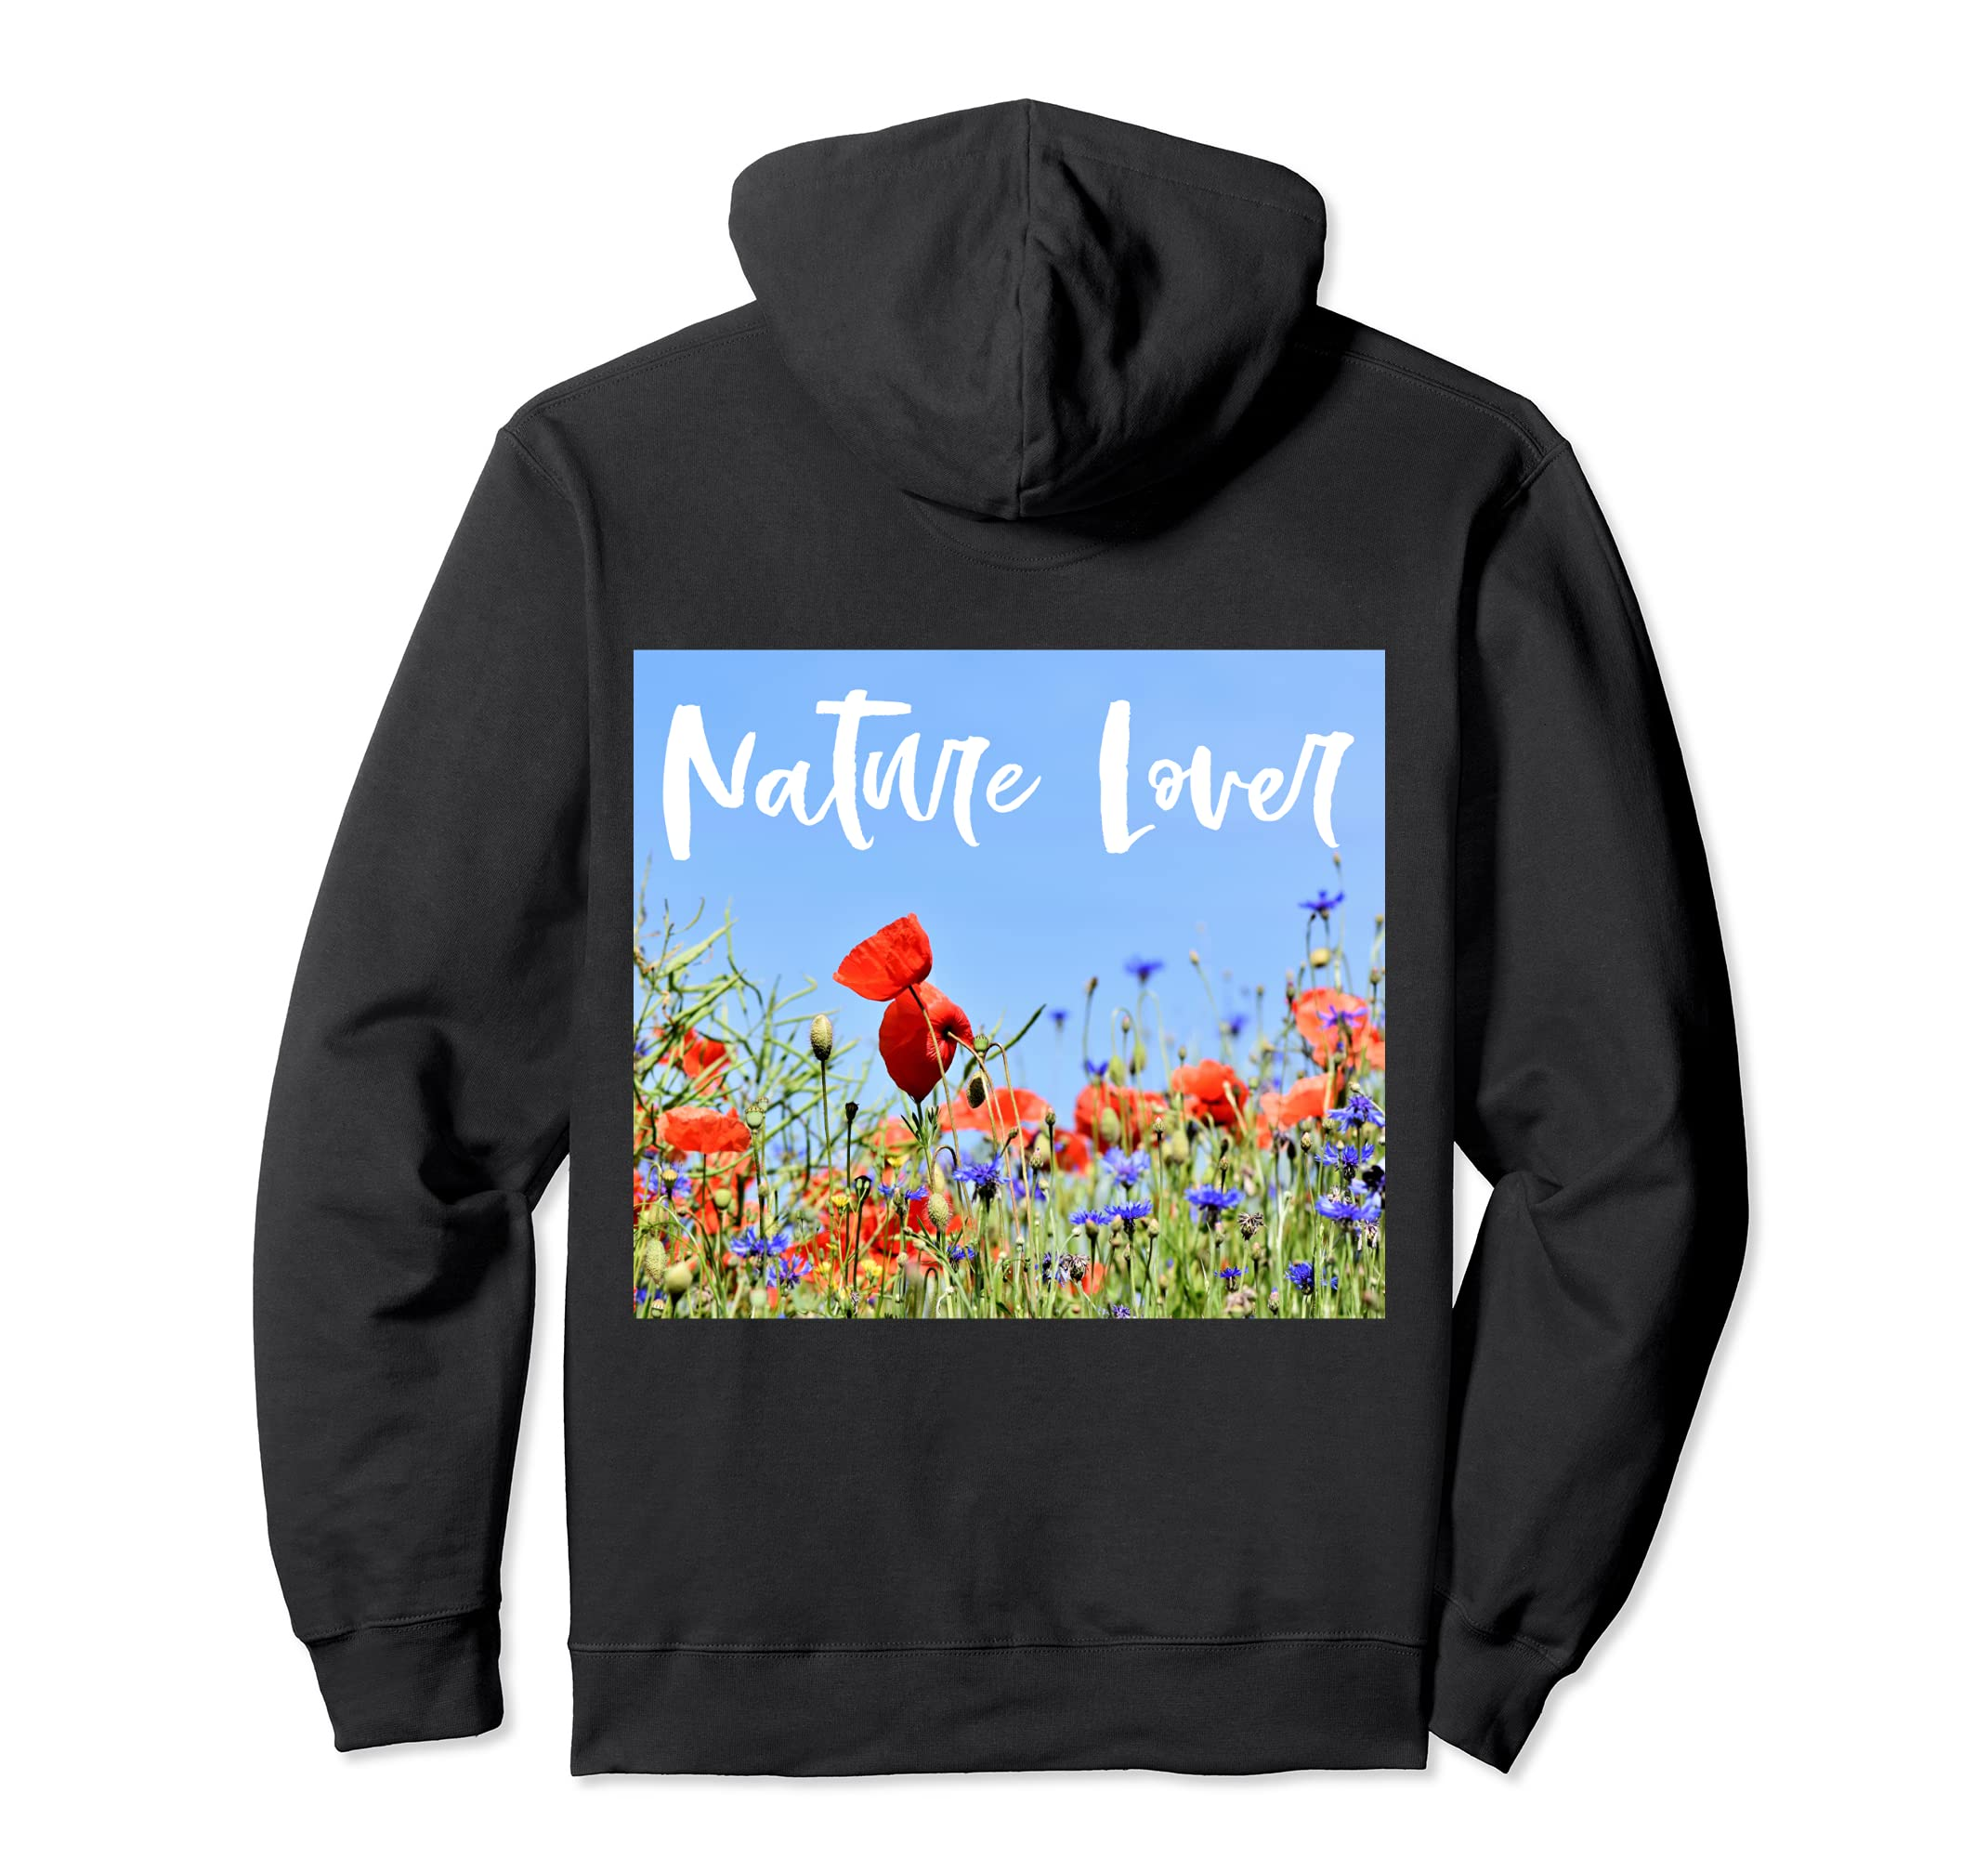 Funny Botanical Art Hoodies   Field Of Poppies Hoodie